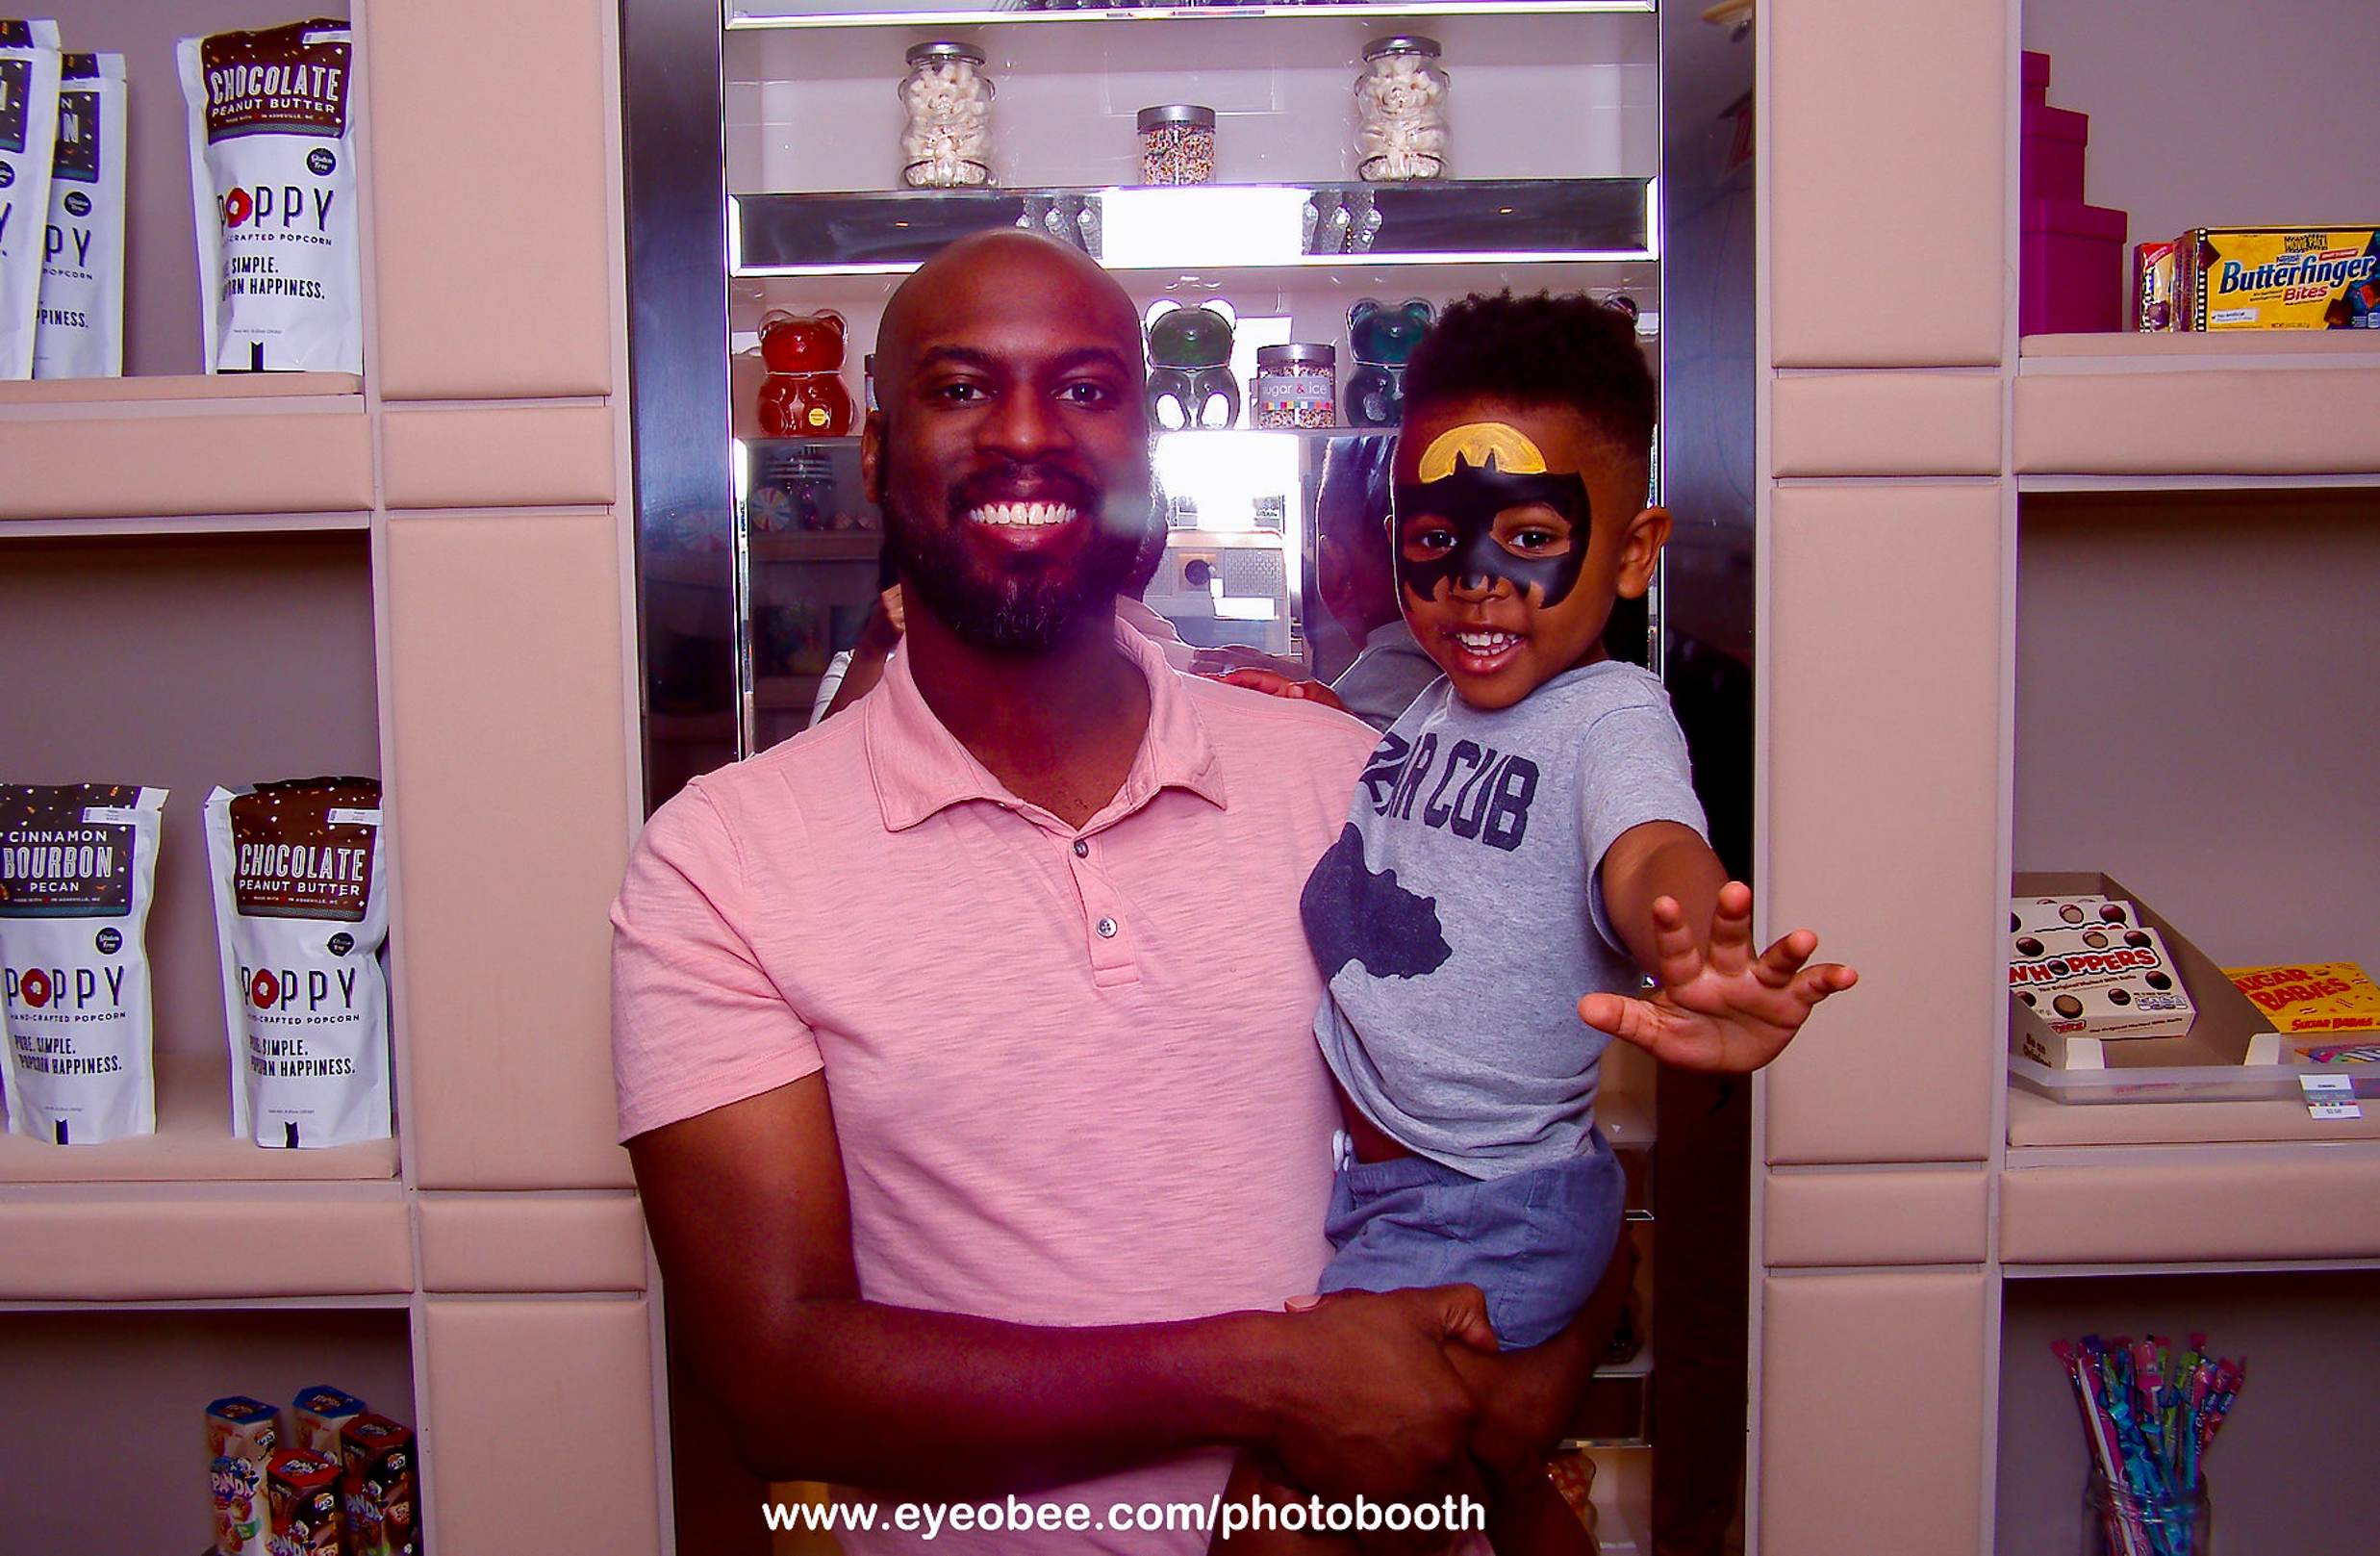 eyeobee PhotoBooth-111.jpg